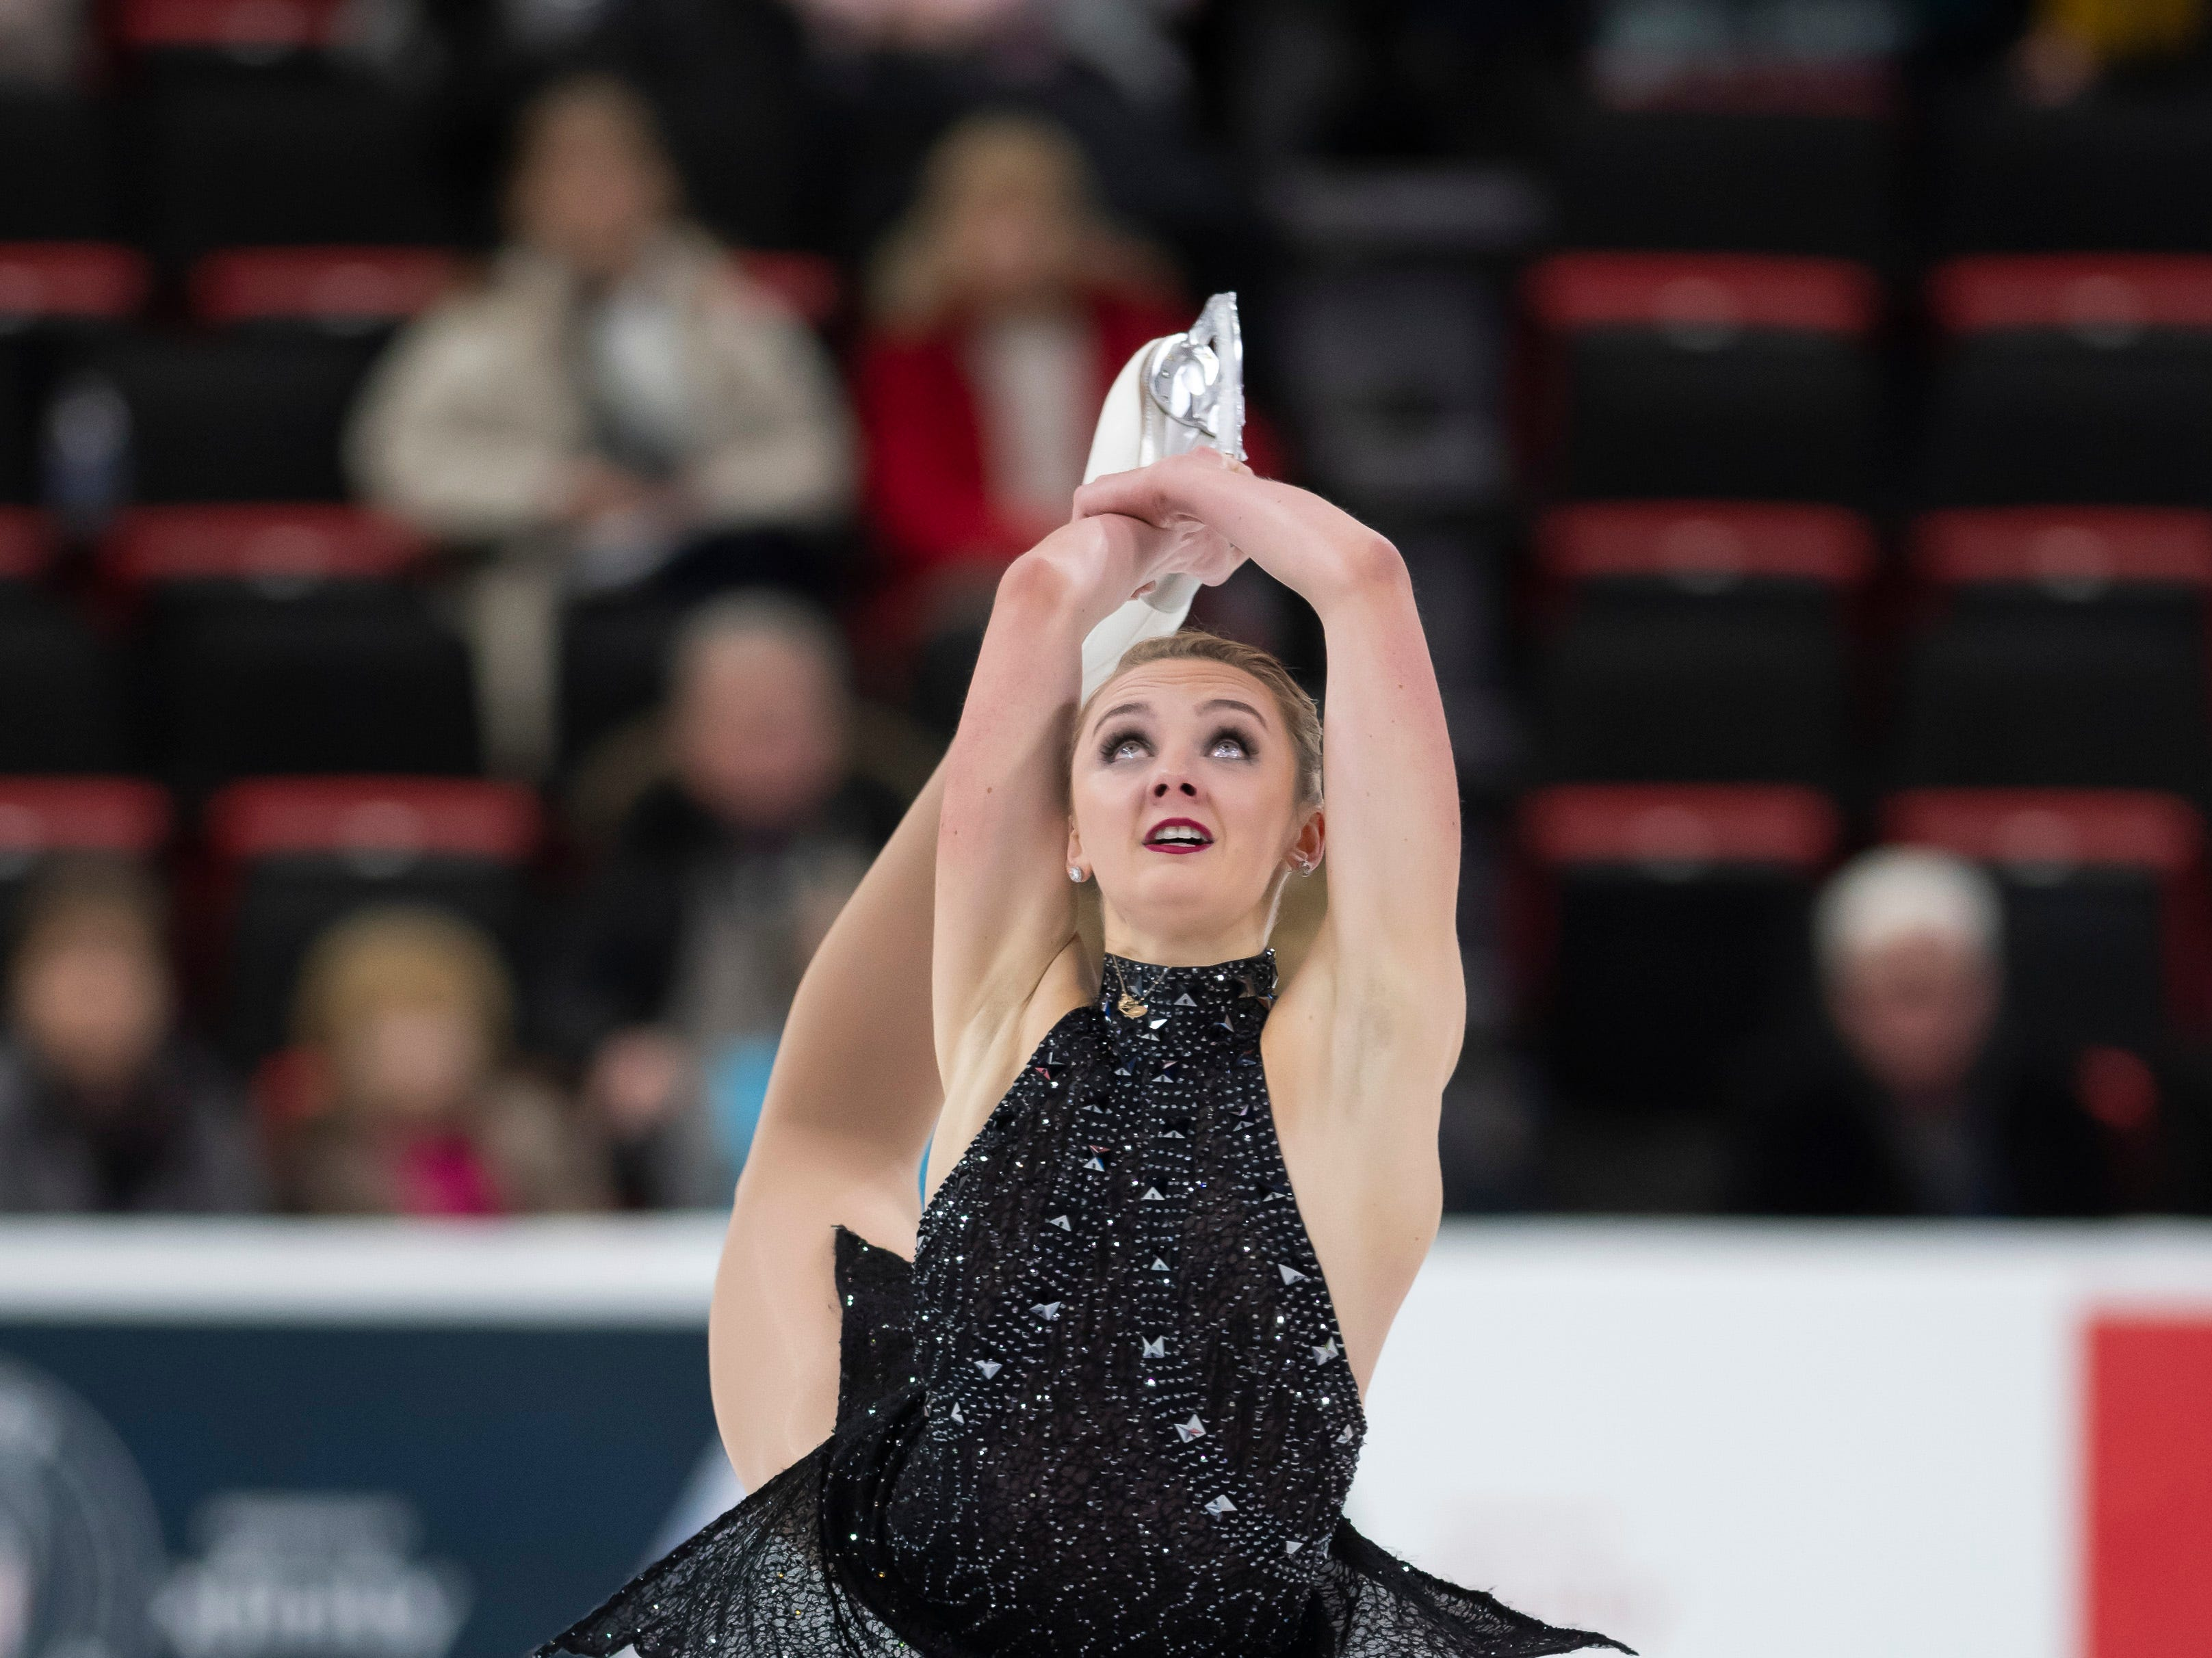 Heidi Munger competes in the ladies short program.